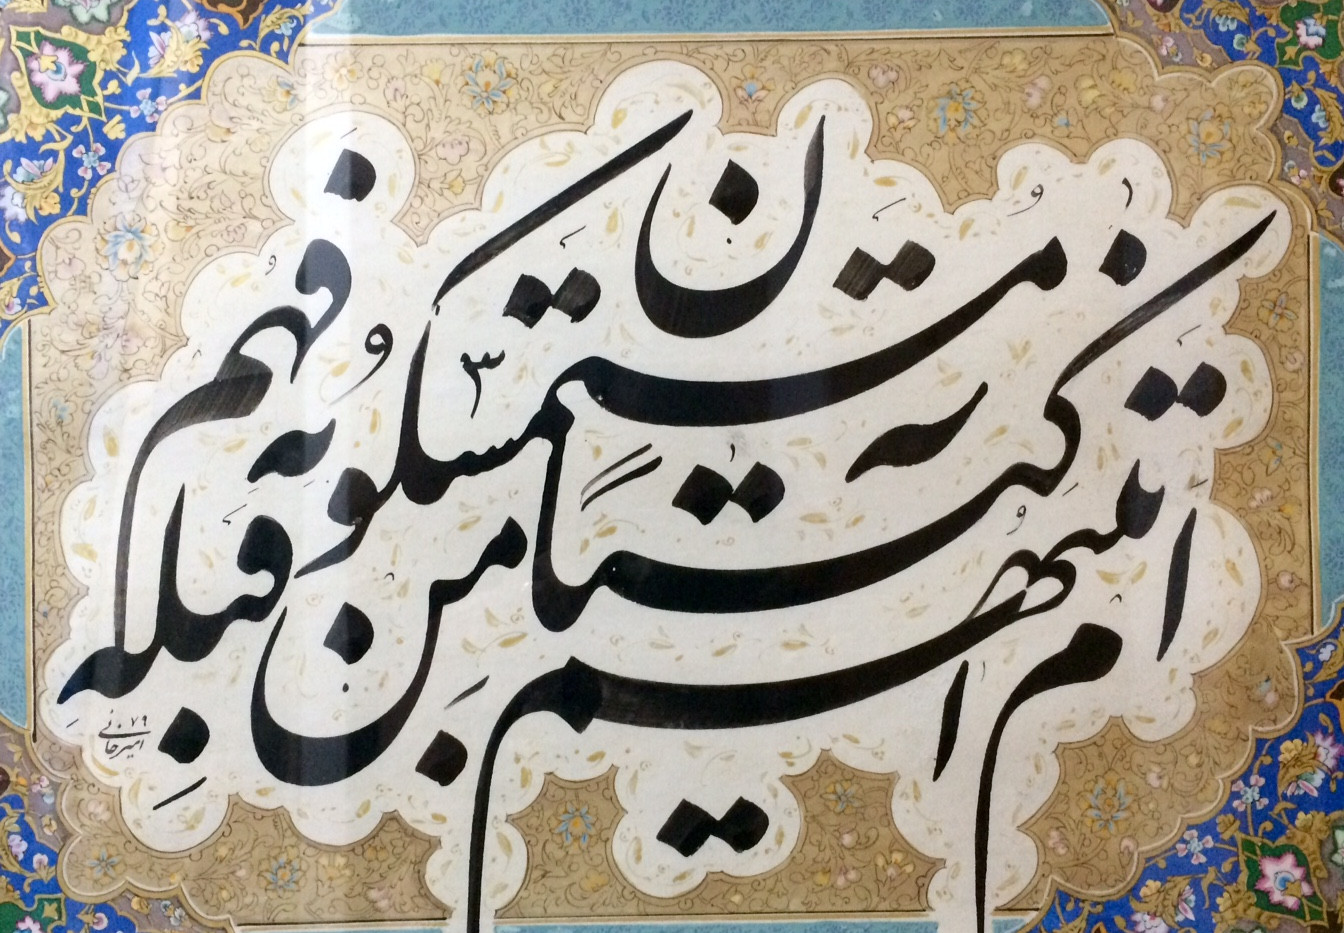 Gholamhossein Amirkhani, Ink on old decorated paper